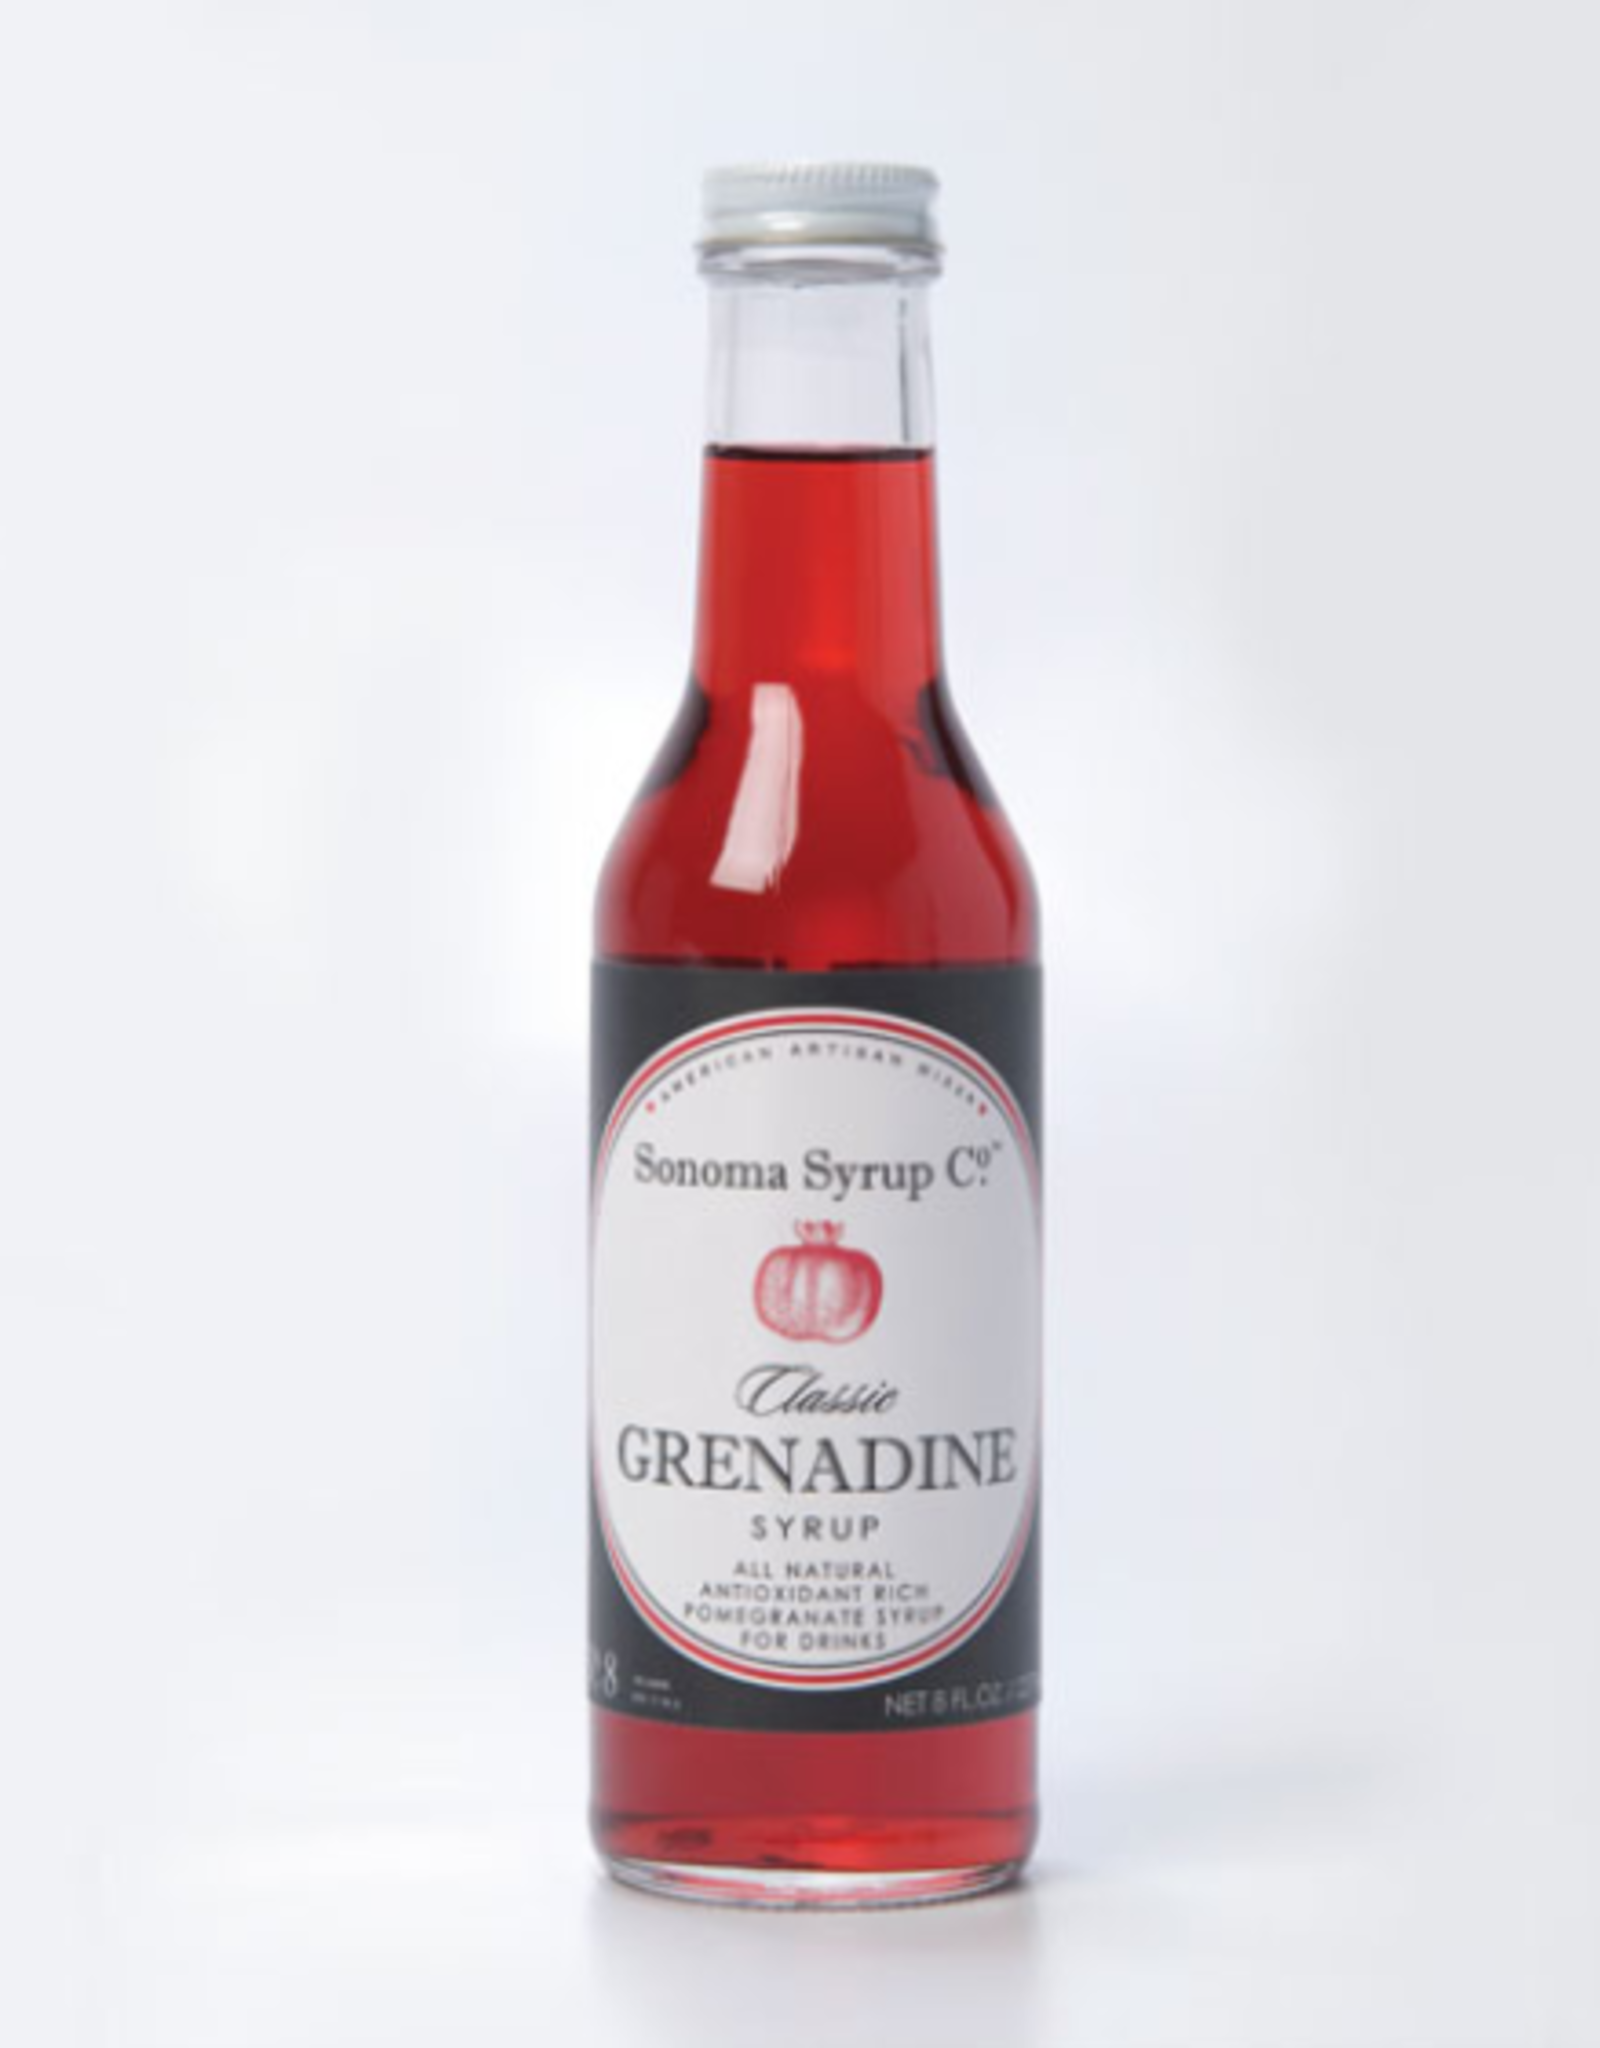 Sonoma Syrup Co. Classic Grenadine Syrup